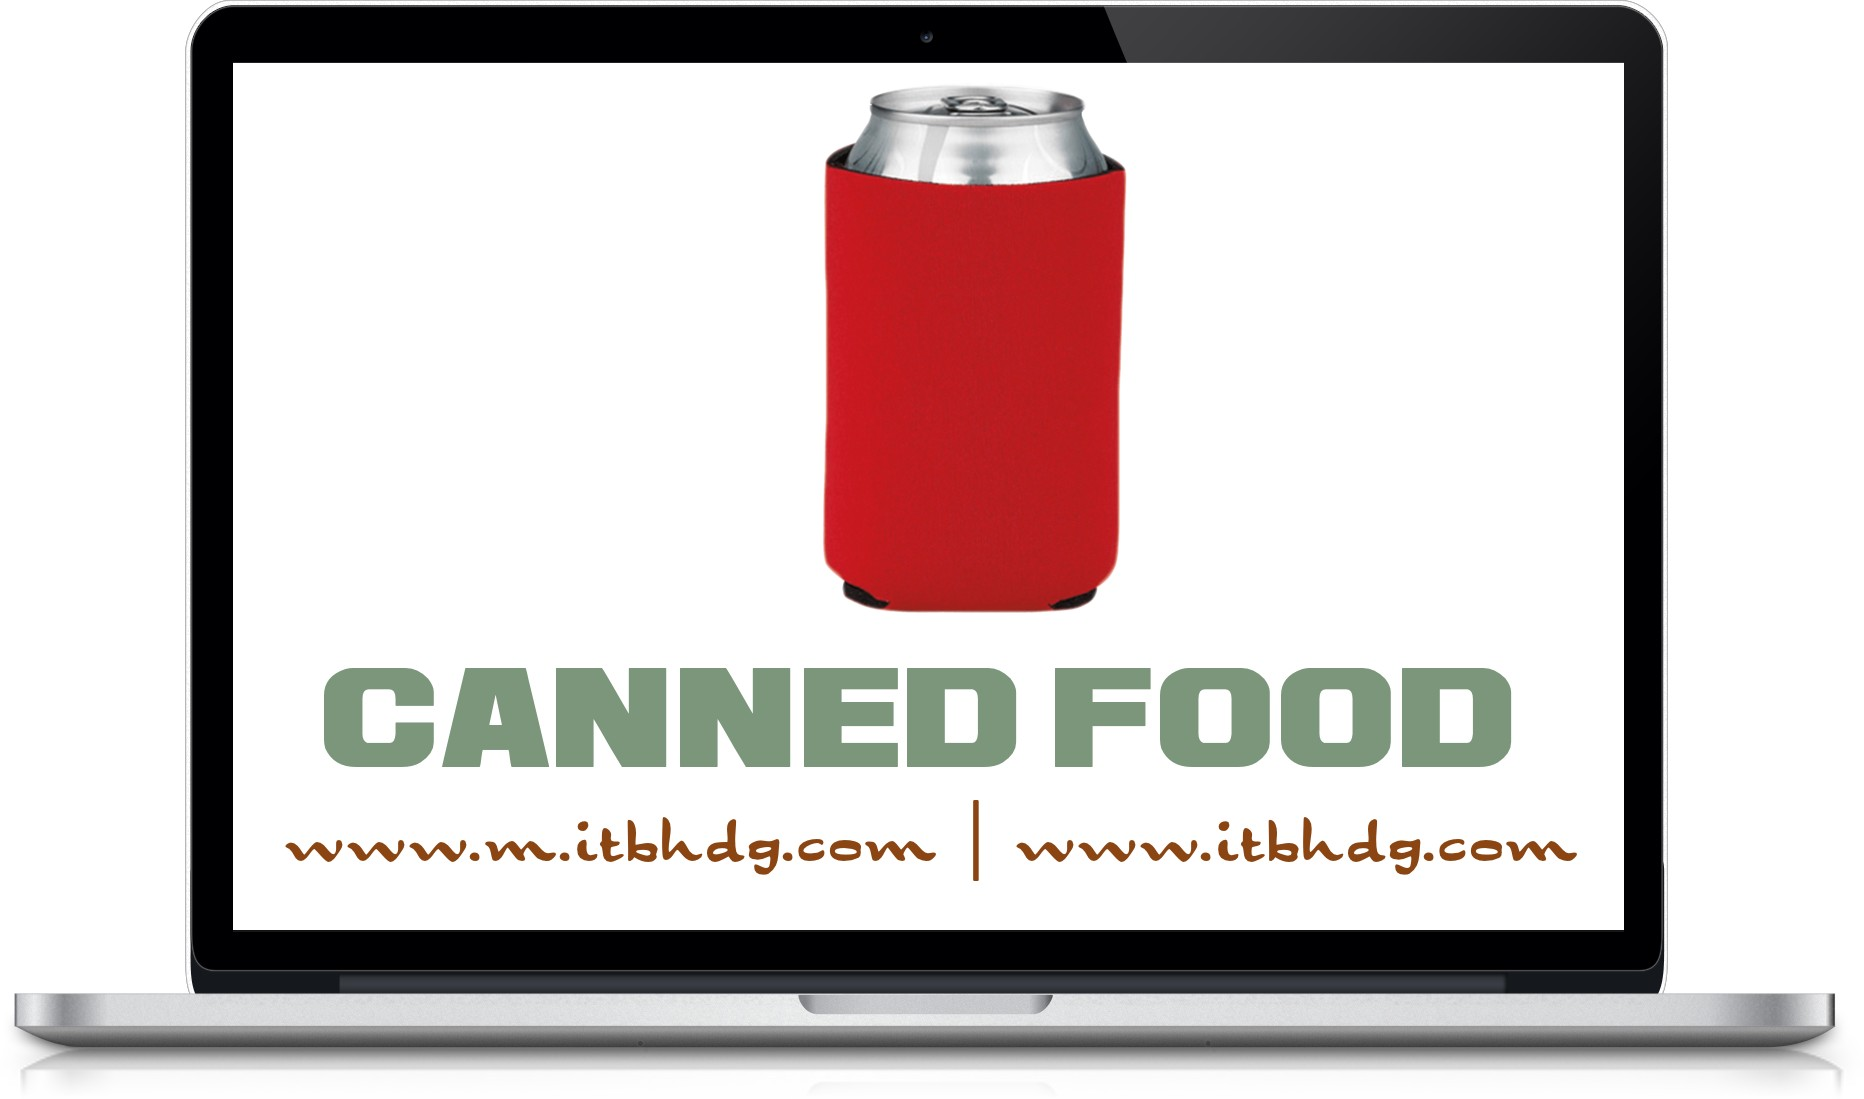 Food Canning Establishment | FDA Registration | Save up to 75% Now | www.itbhdg.com